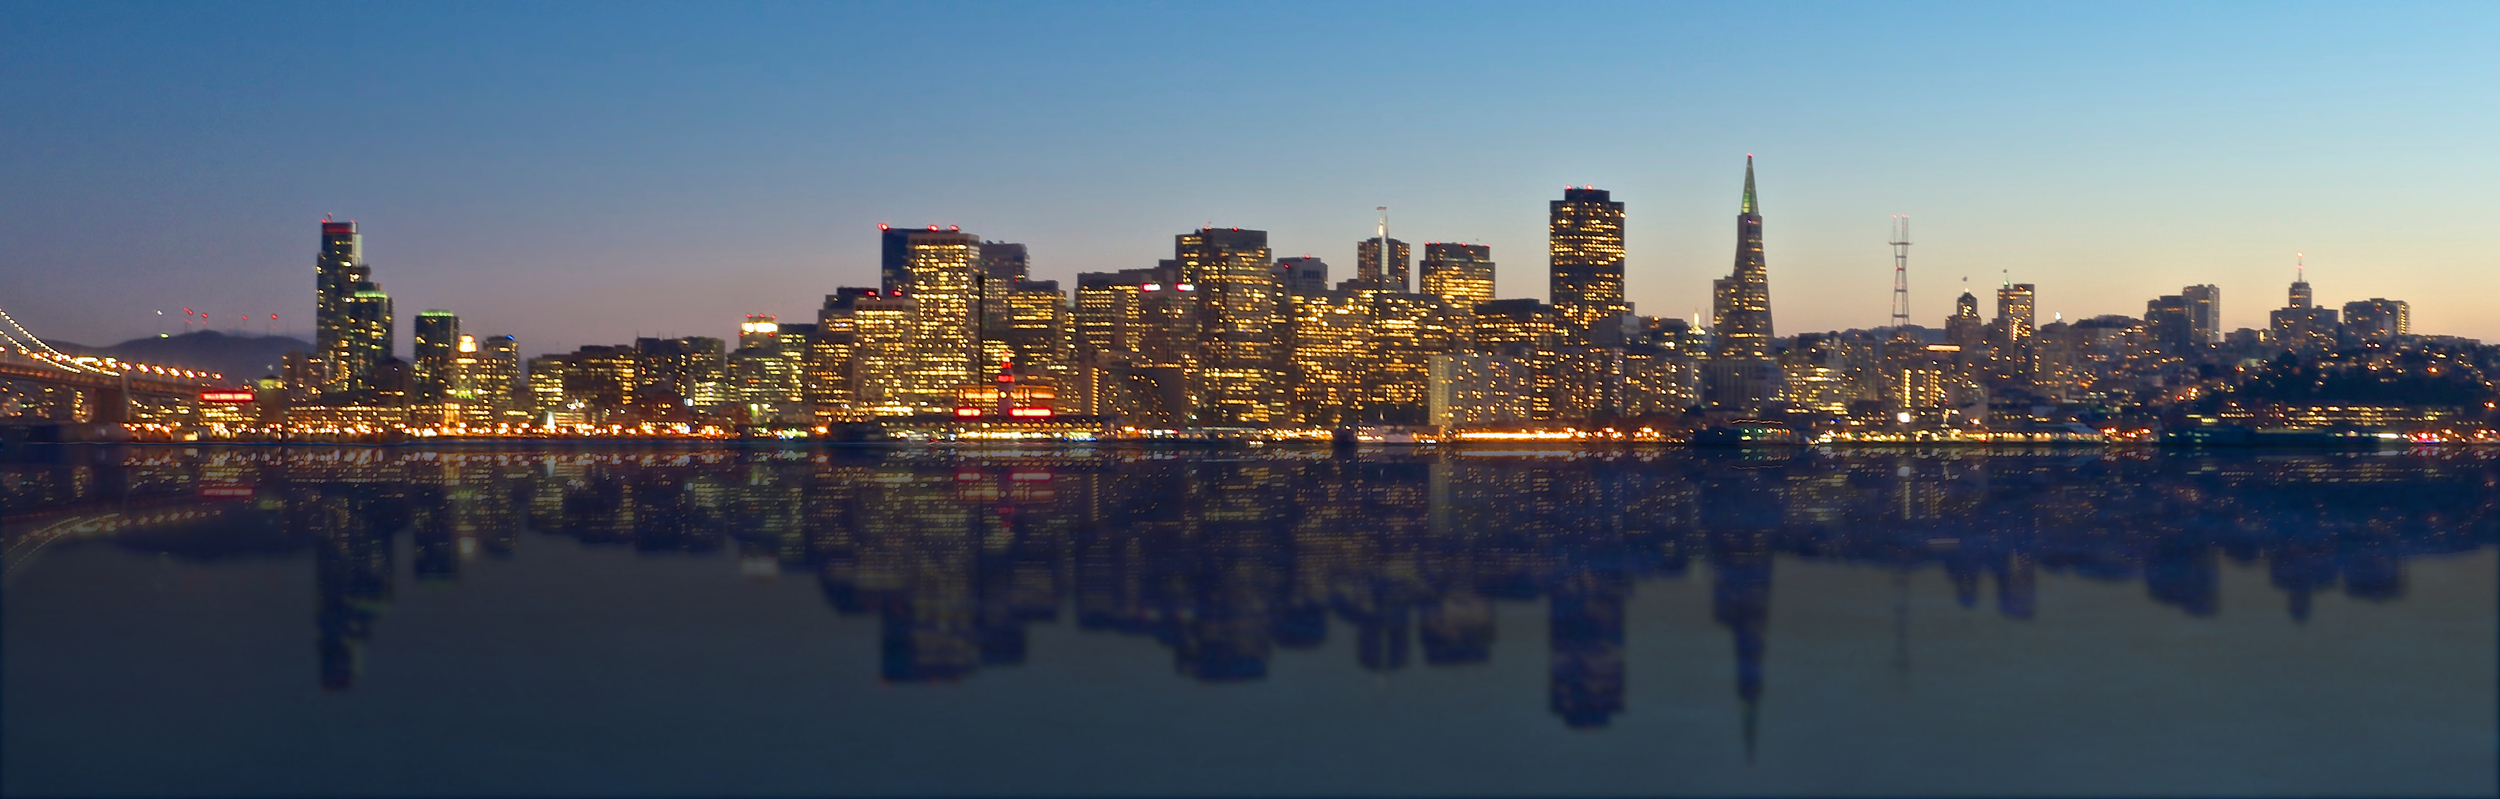 San Francisco skyline with reflection on the bay.